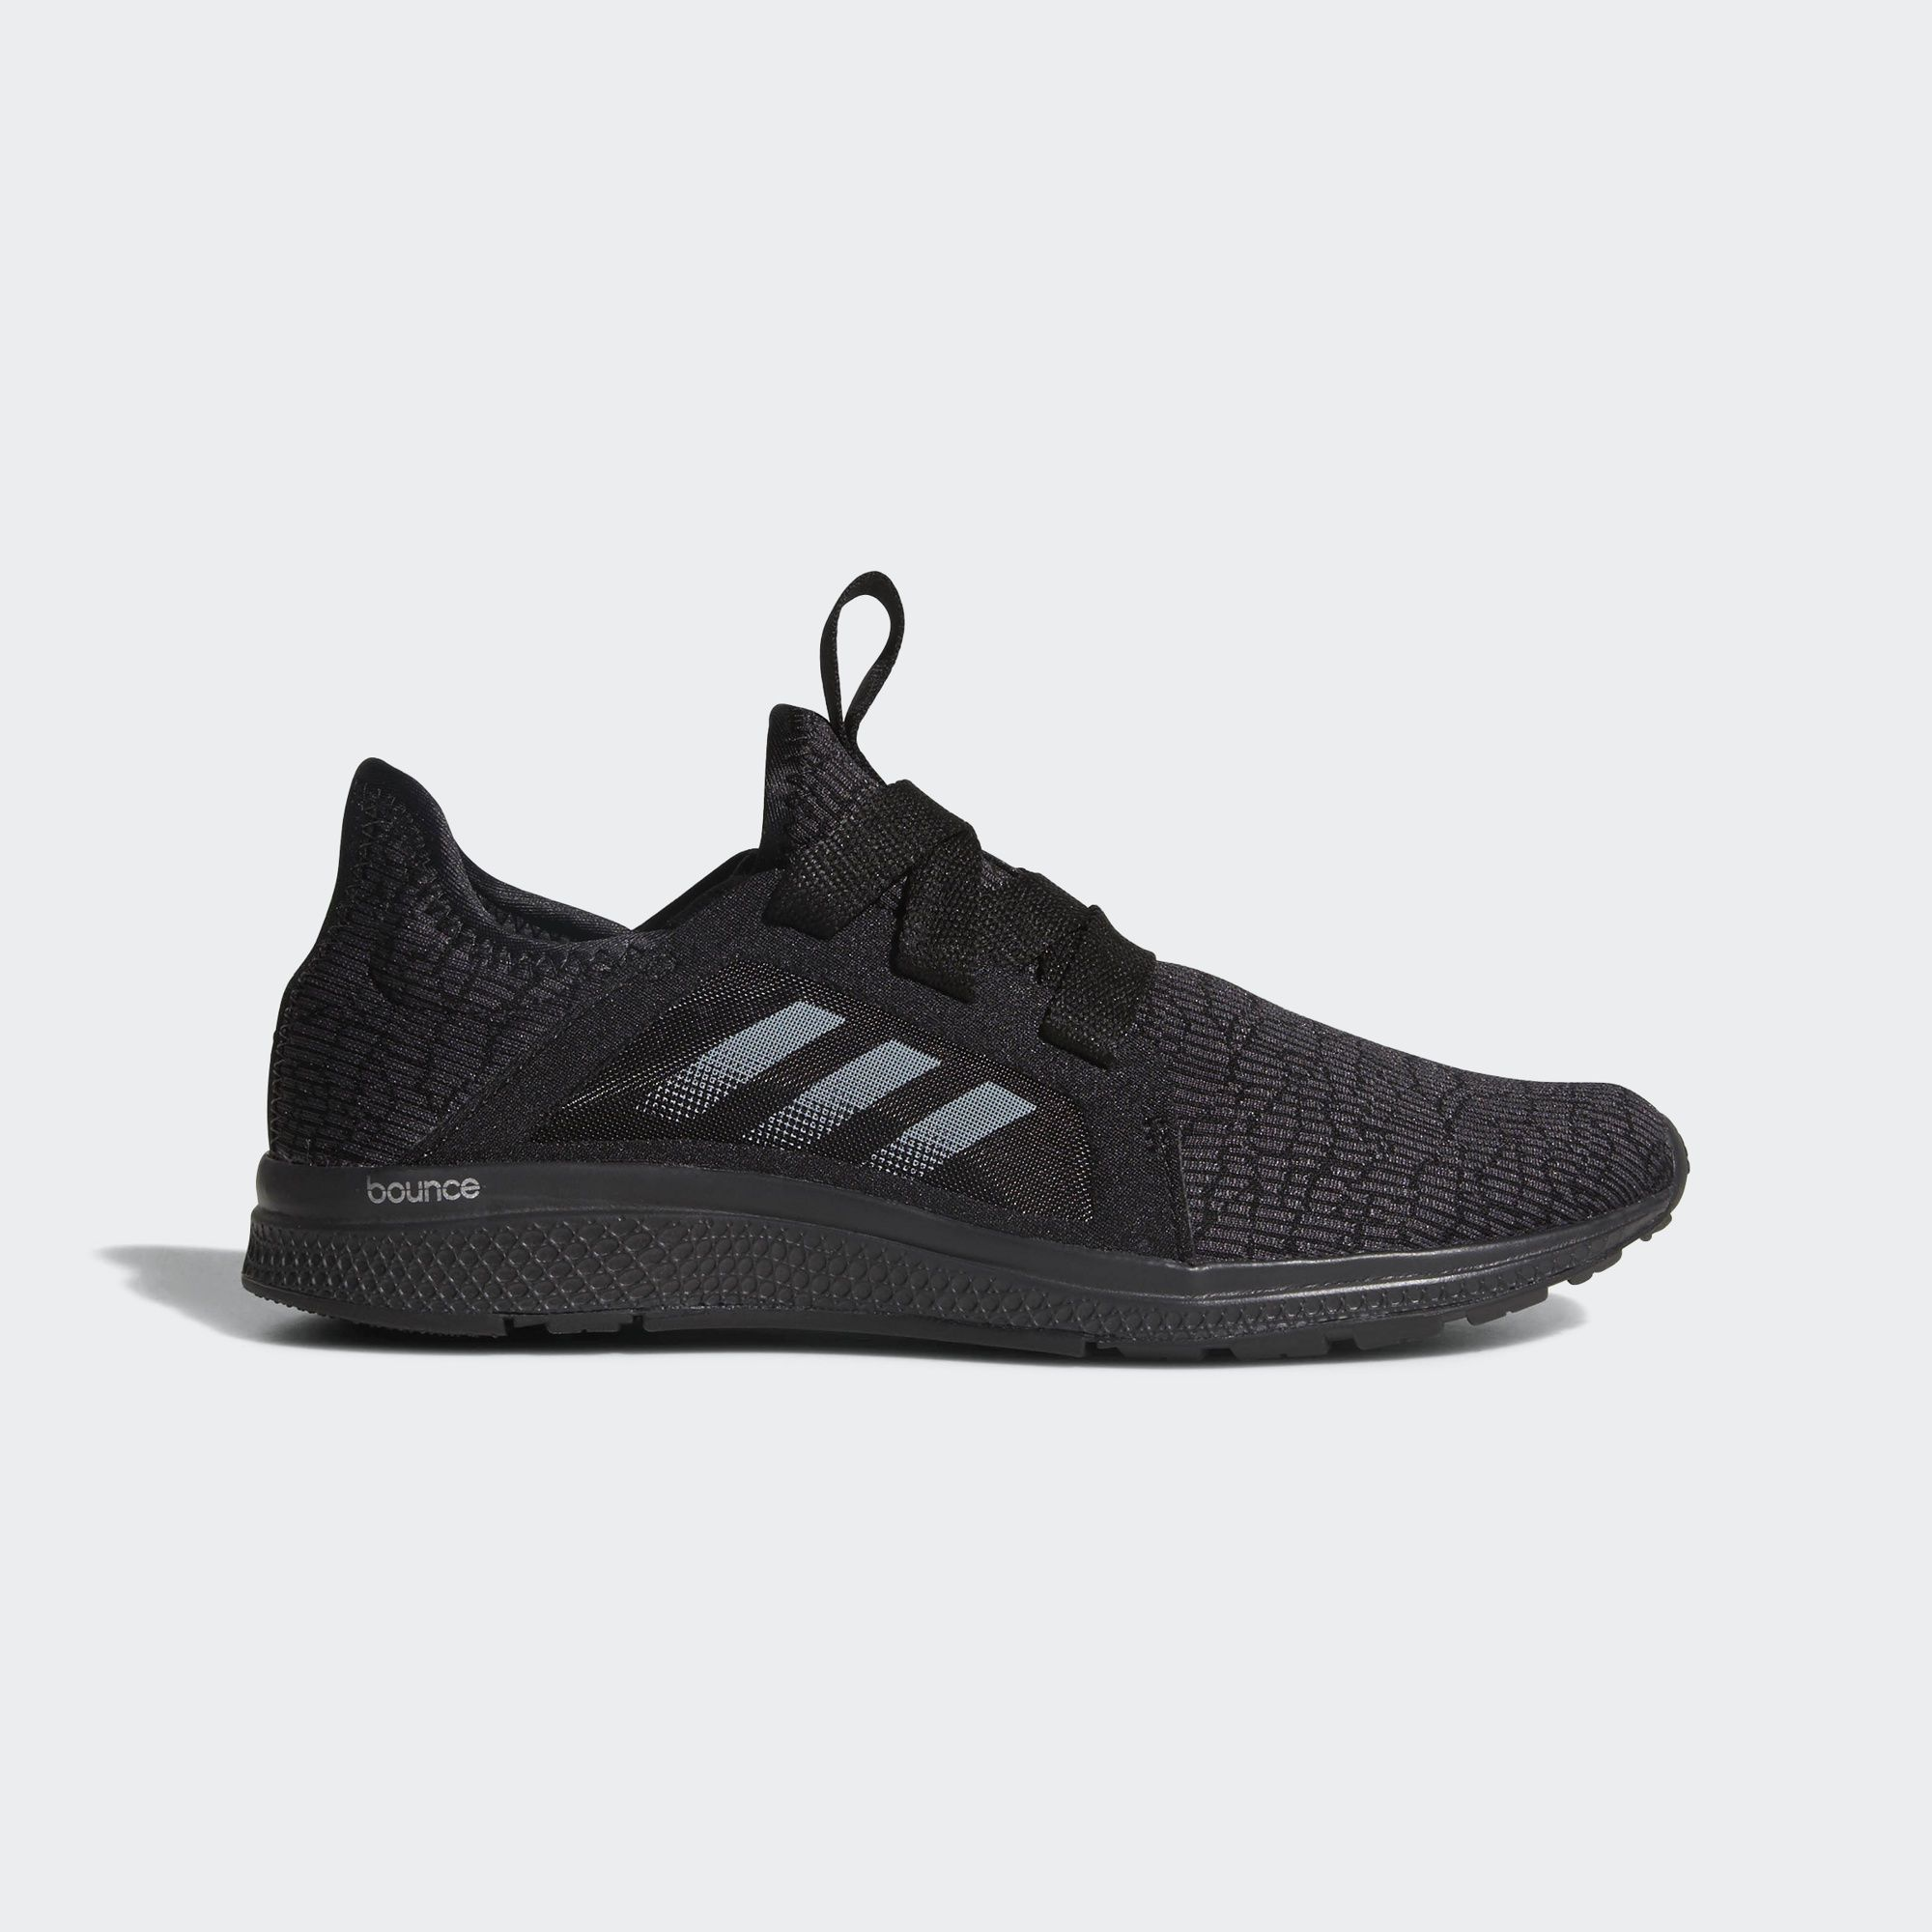 caligrafía espacio pecho  adidas running shoes clearance Online Shopping for Women, Men, Kids Fashion  & Lifestyle|Free Delivery & Returns! -